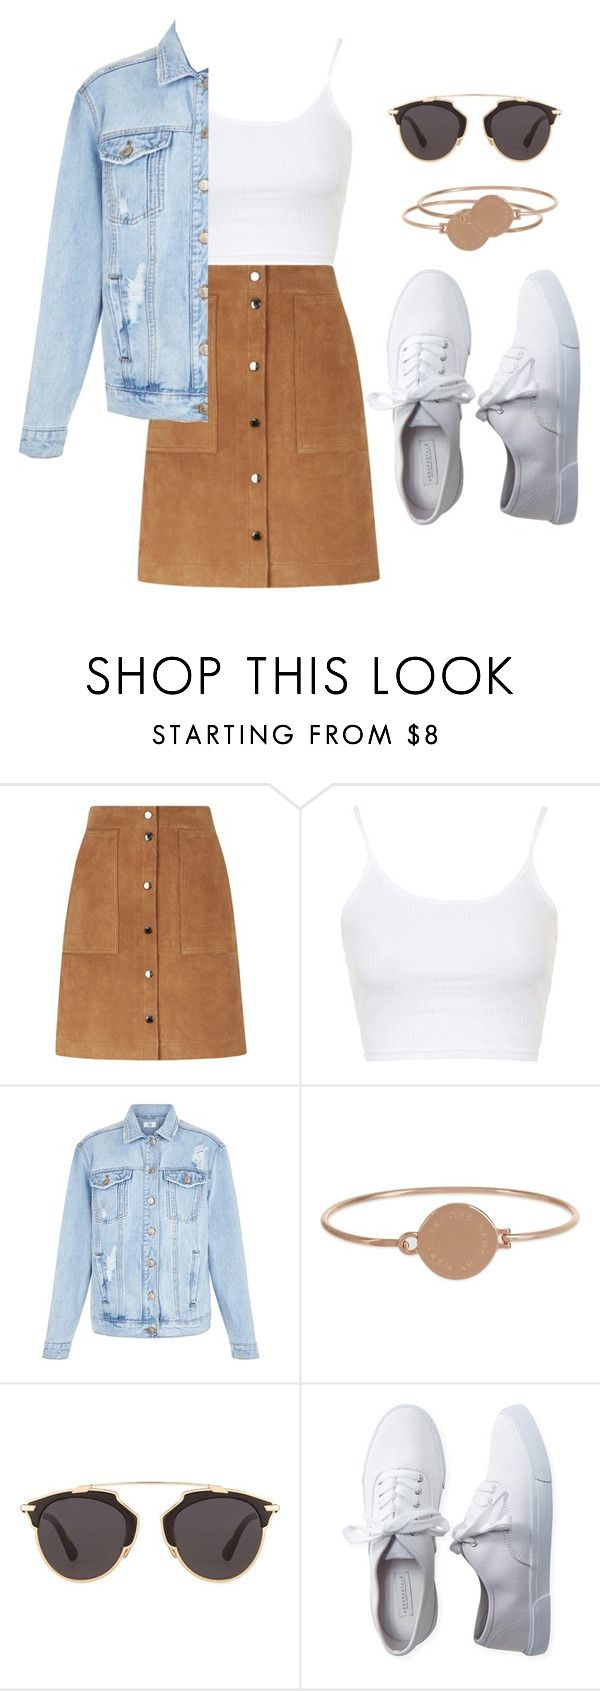 """suede skirt"" by izzymynizzle ❤ liked on Polyvore featuring Vanessa Bruno Athé, Topshop, Marc Jacobs, Christian Dior, Aéropostale, white, skirt and croptop"